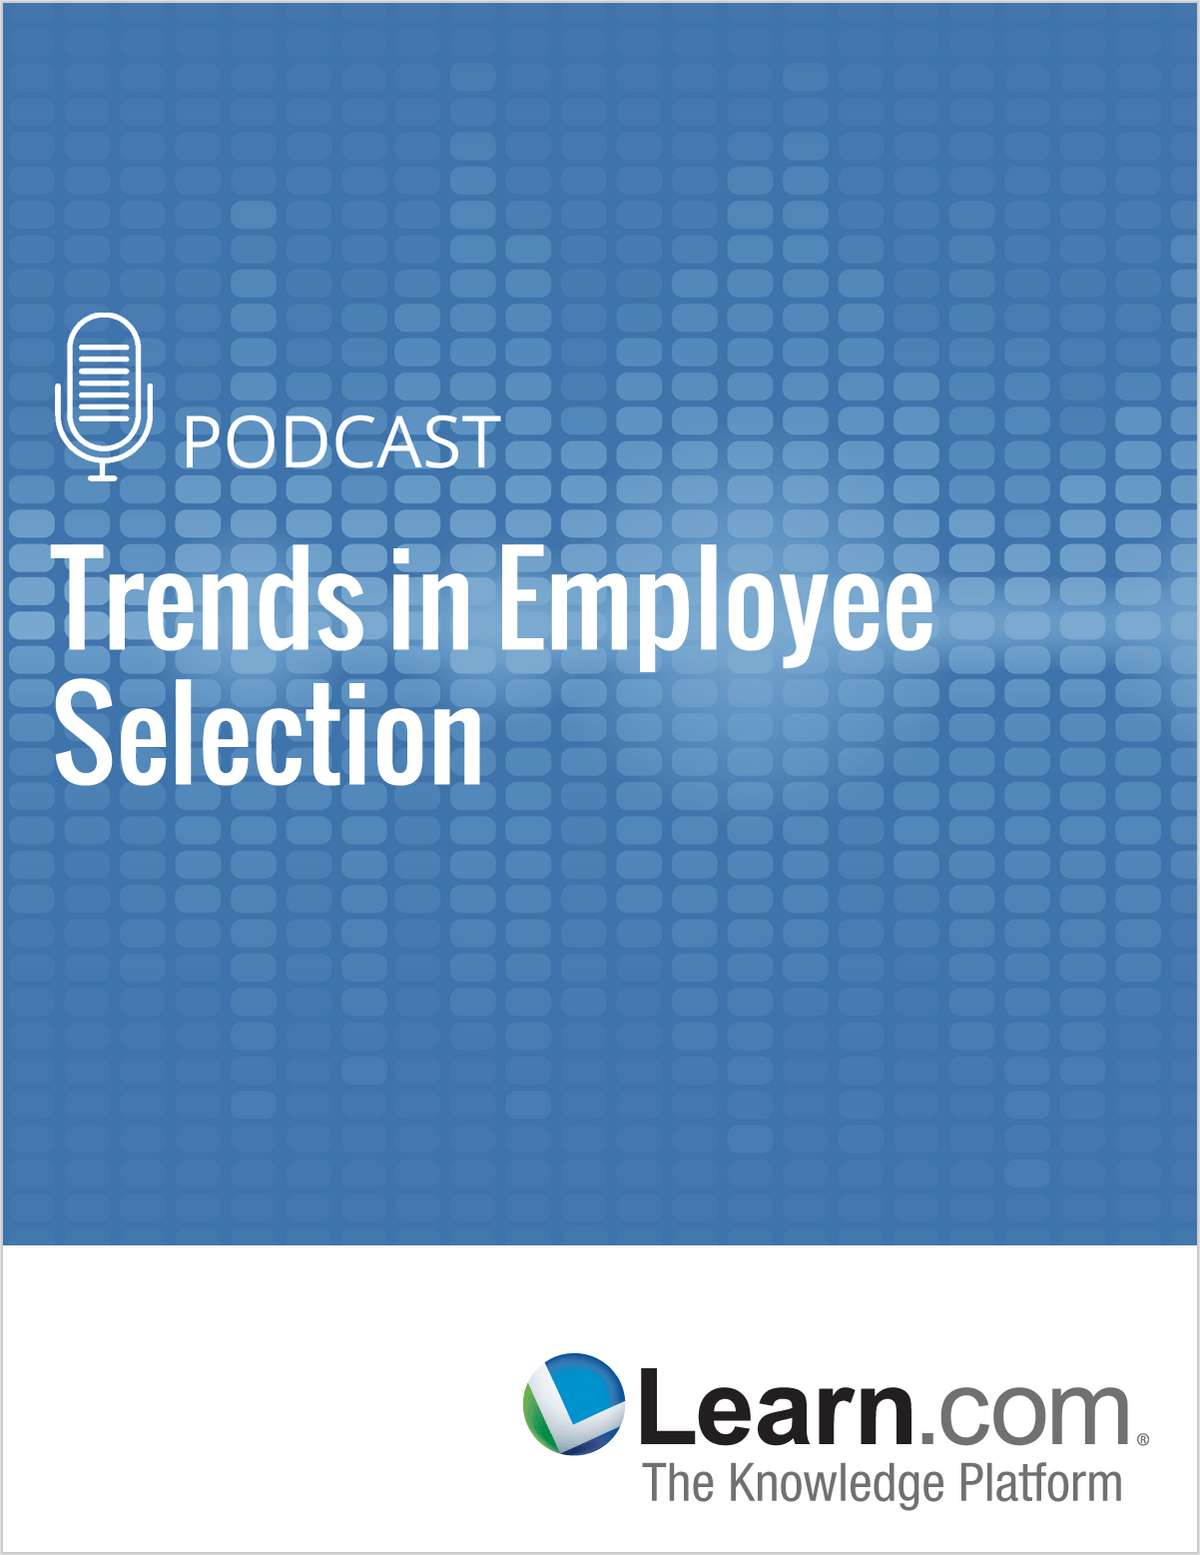 Trends in Employee Selection